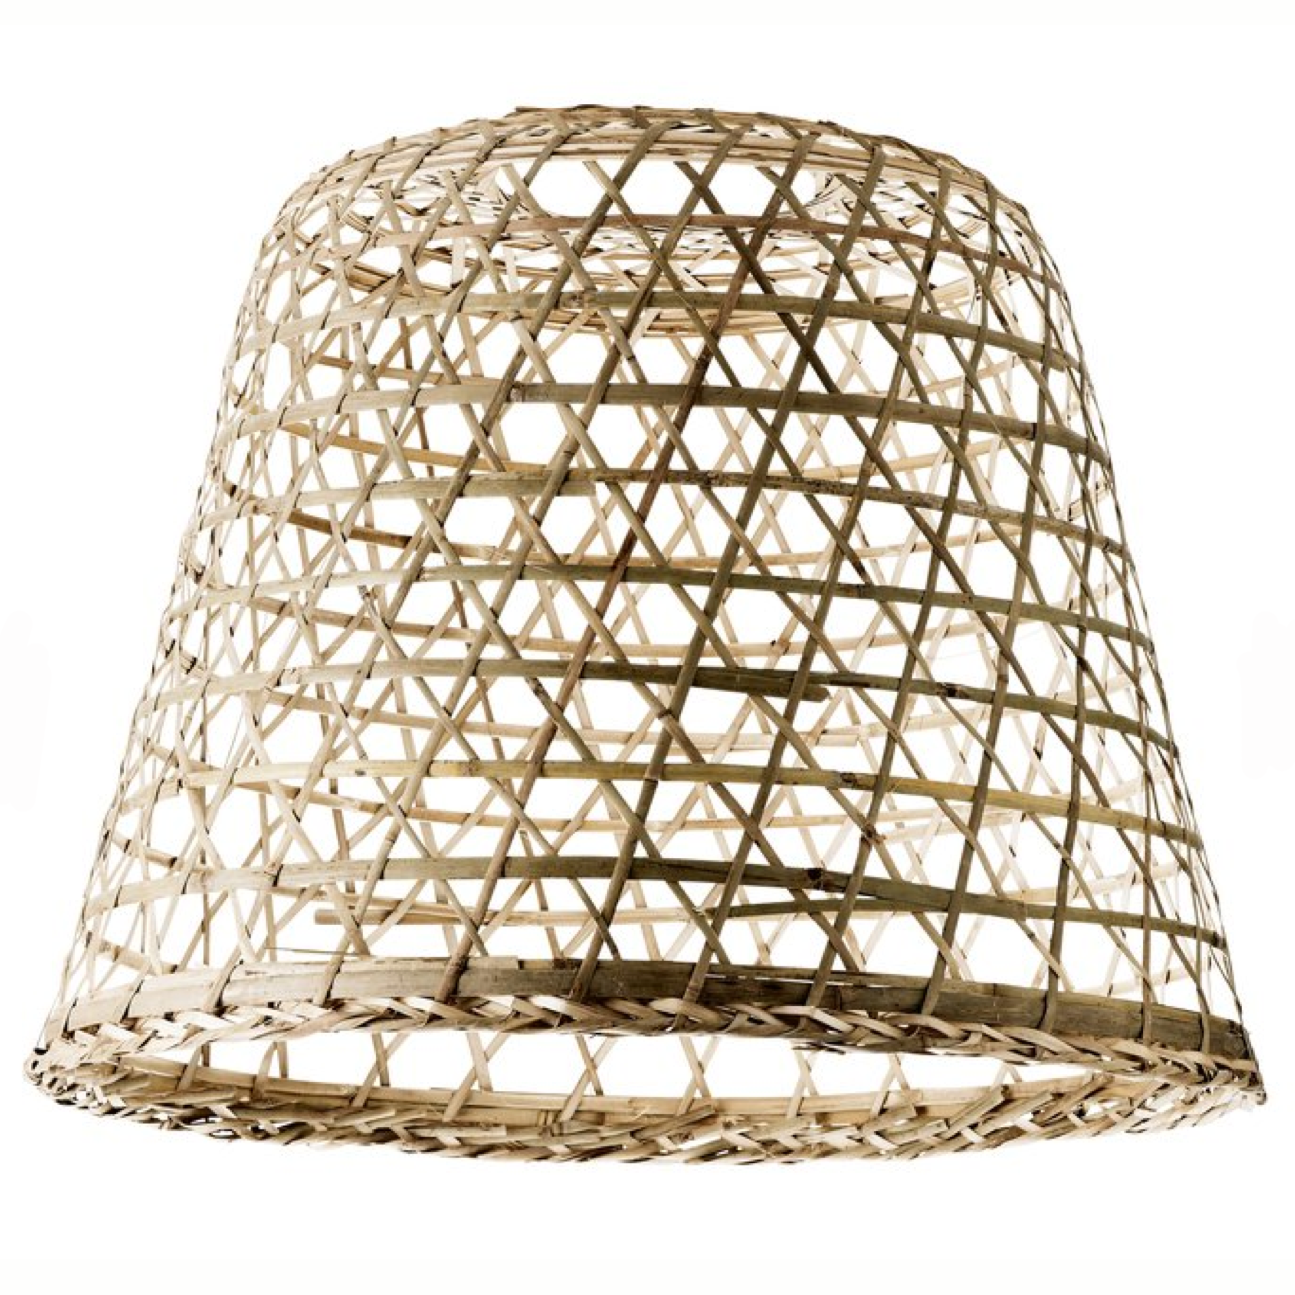 Bamboo Lamp Shade Does Not Include Light Kit Bamboo Lamp Lamp